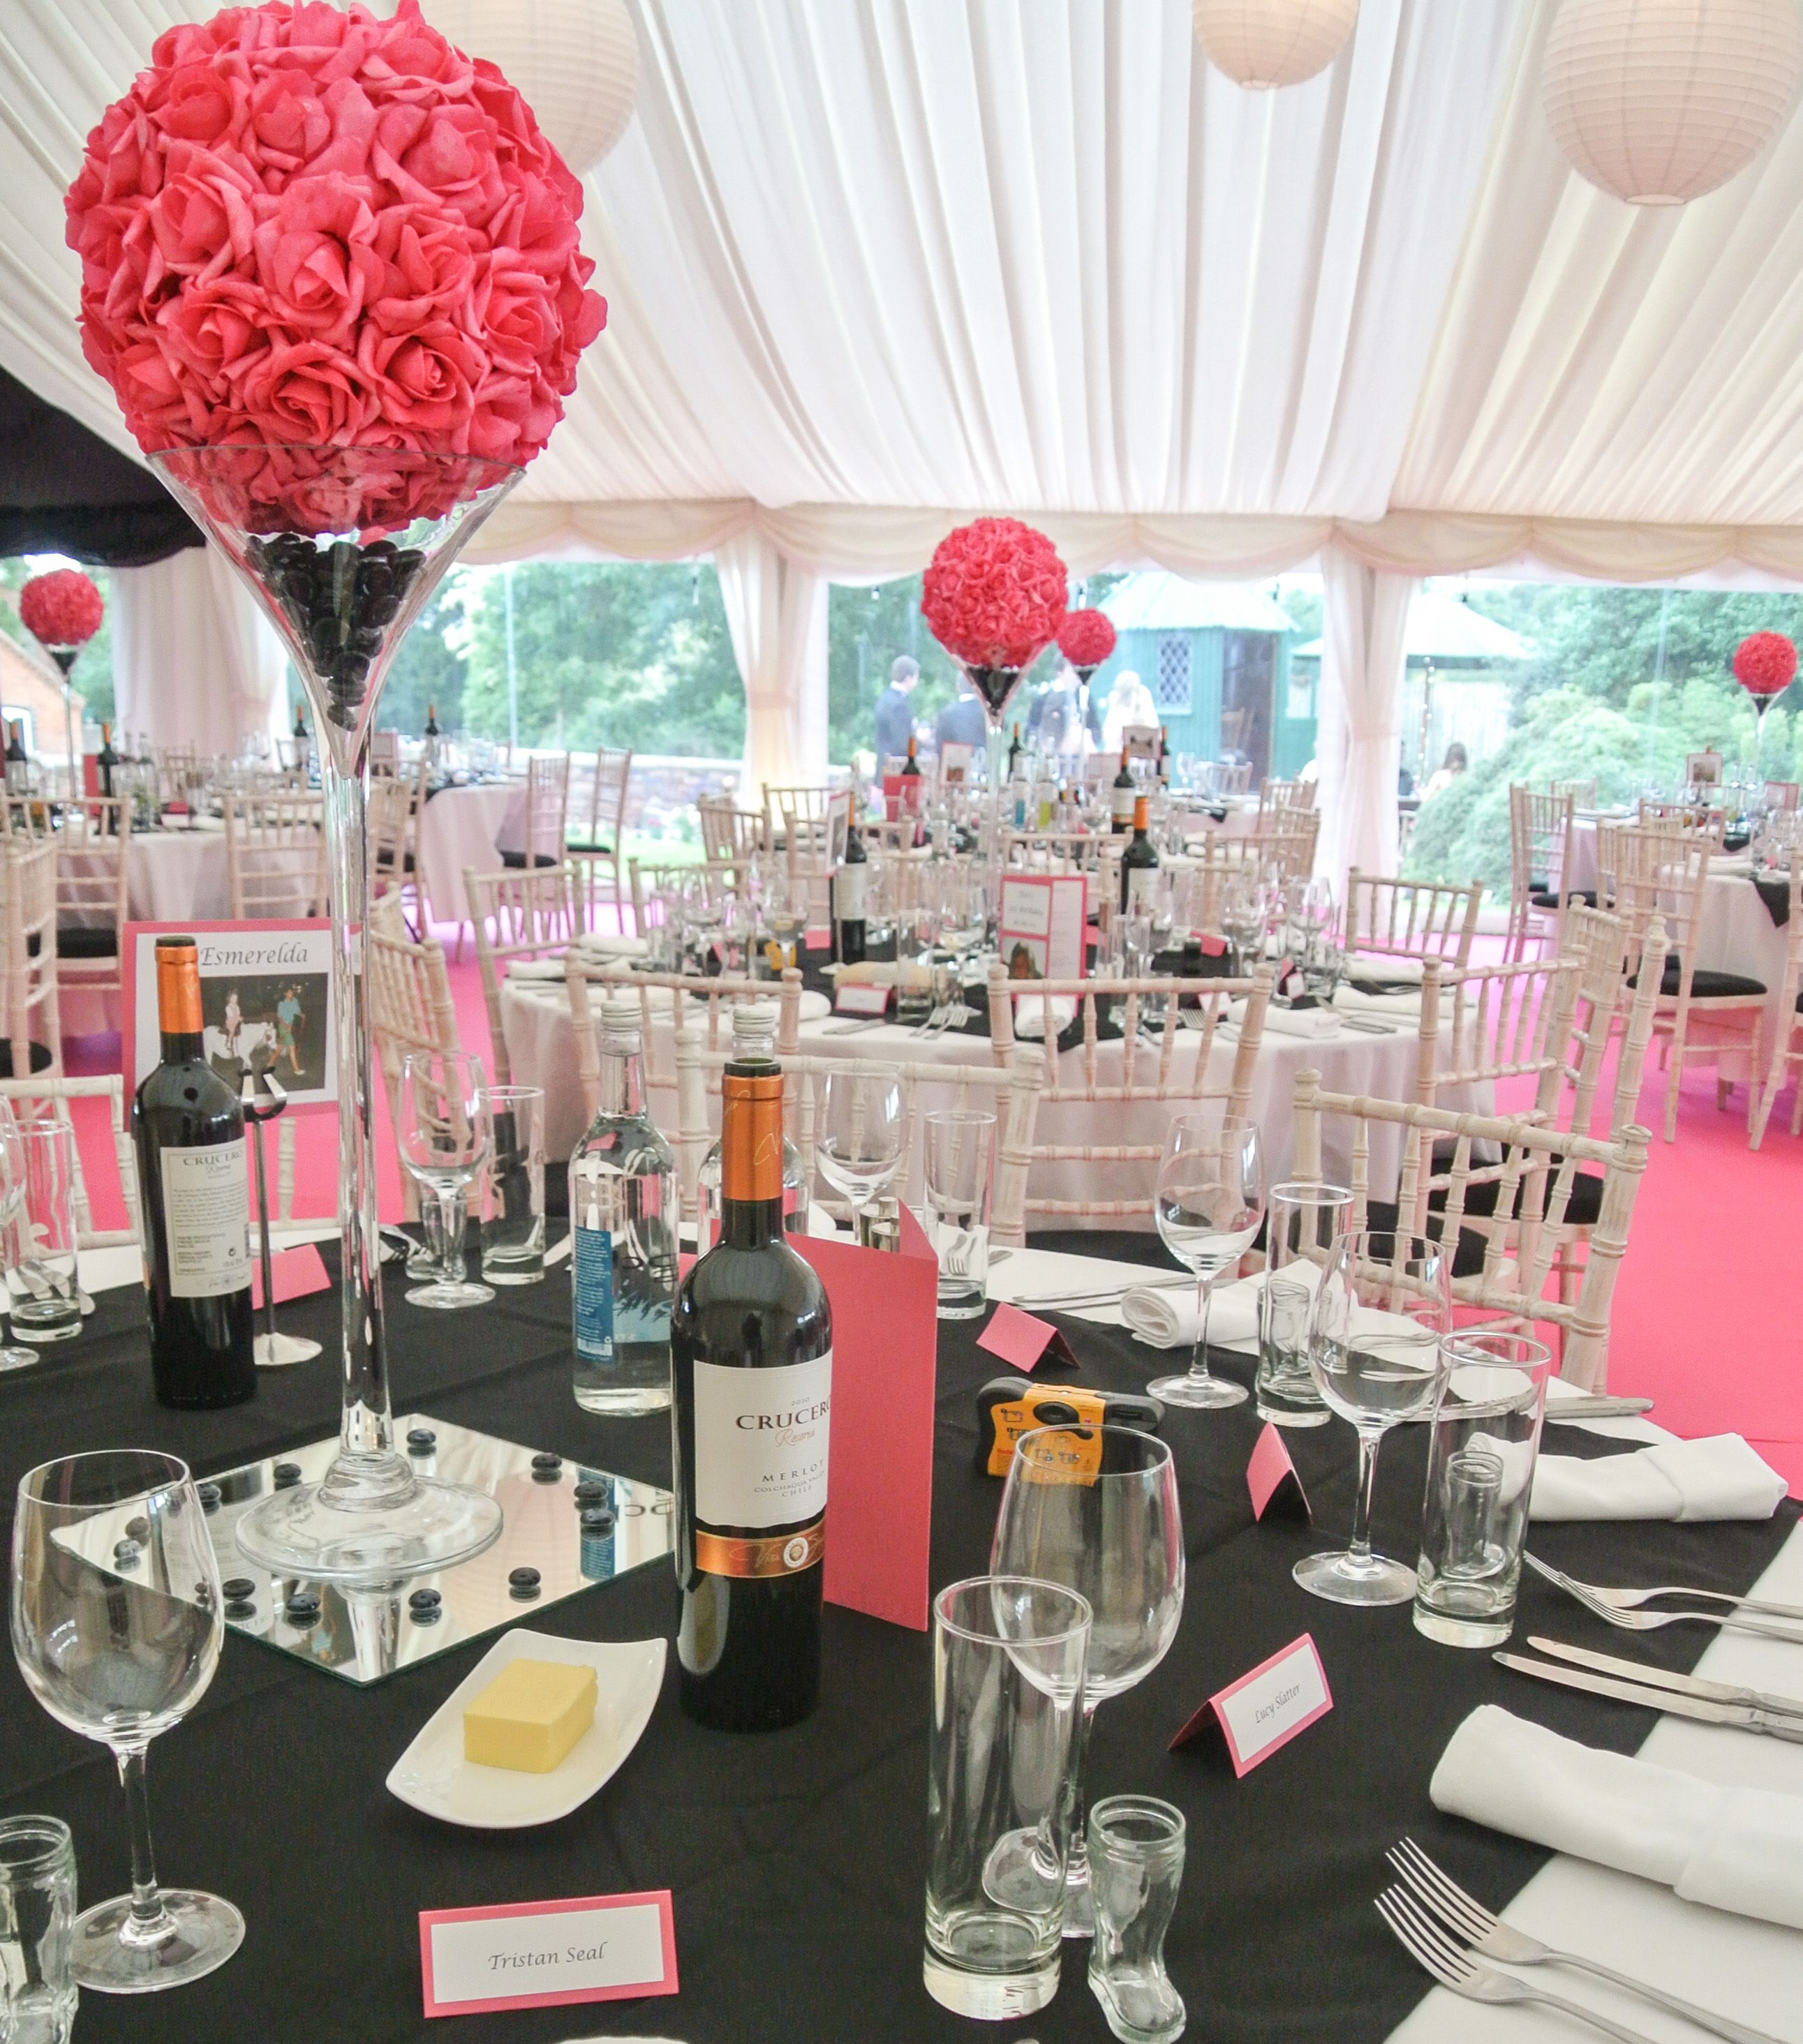 Party Marquee In Pink And Black Decoration Idea Decor 21st 18th Birthday